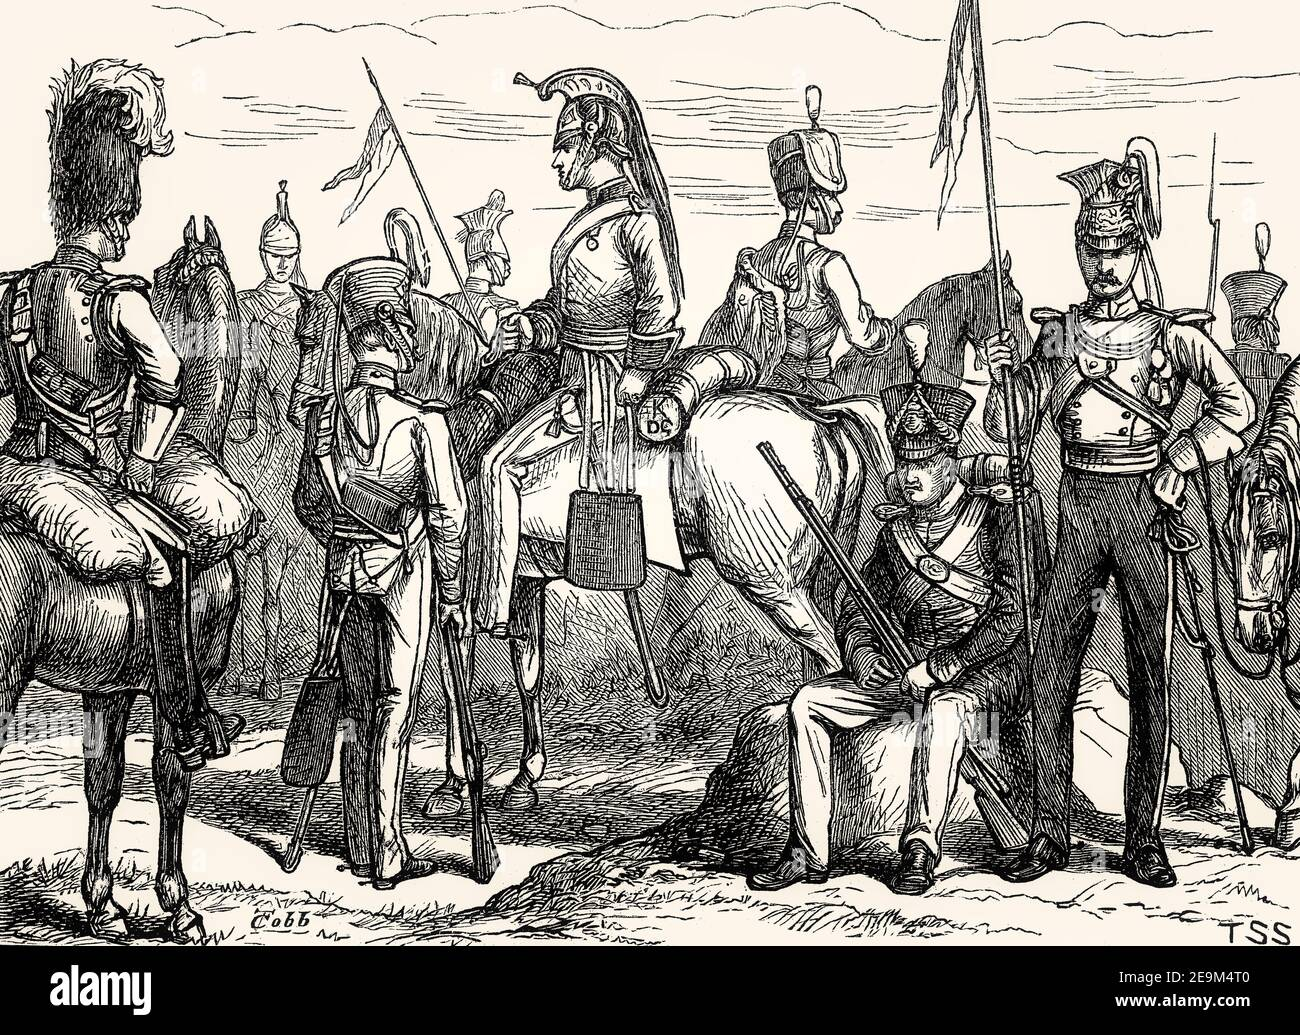 British military uniforms, 19th century; From British Battles on Land and Sea, by James Grant Stock Photo